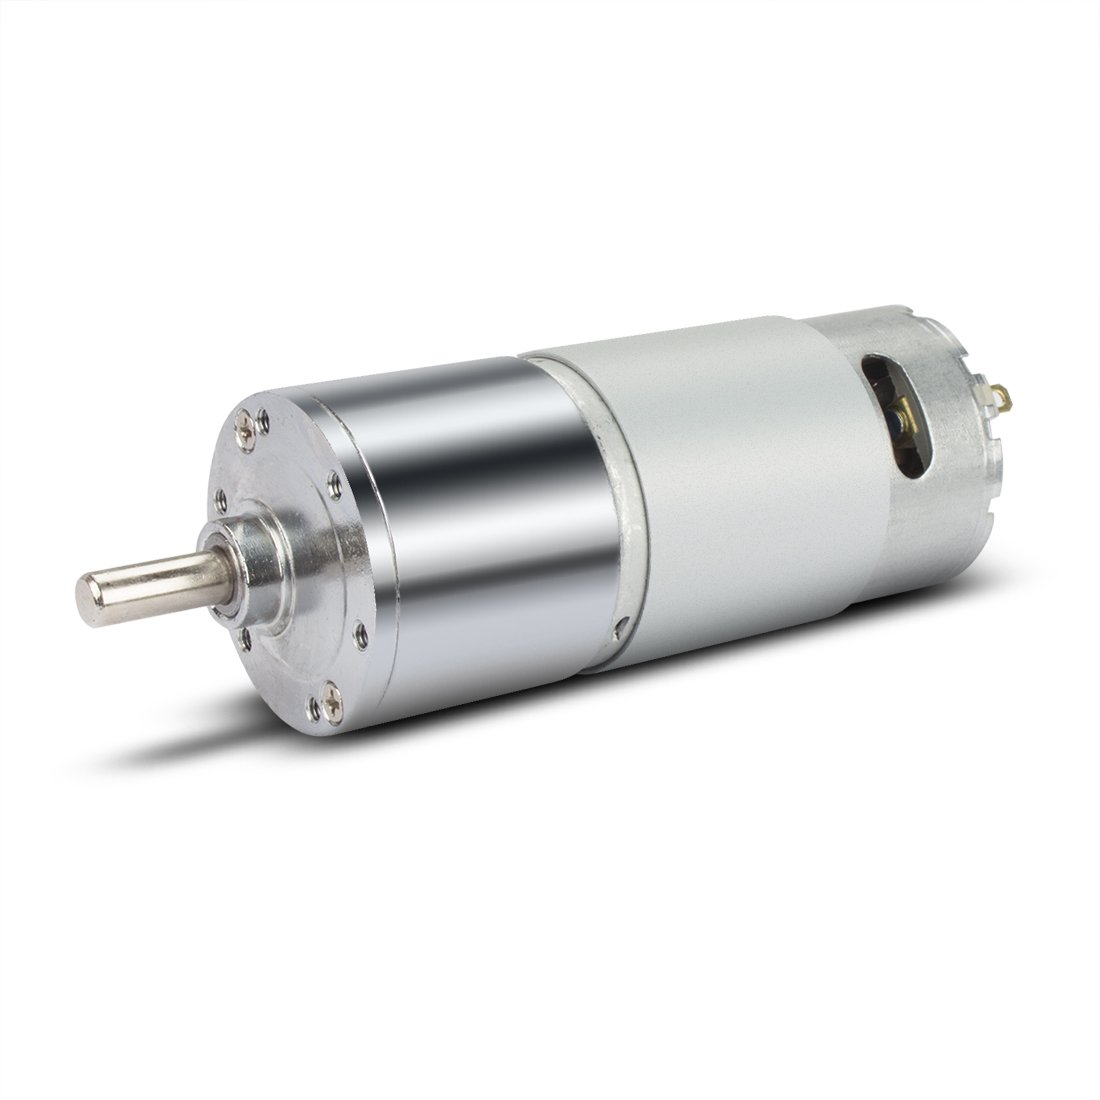 uxcell 60RPM DC 12V Micro Gear Box Motor Speed Reduction Electric Gearbox Eccentric Output Shaft with 6mm Diameter, 15mm Length, M3 Hole Size